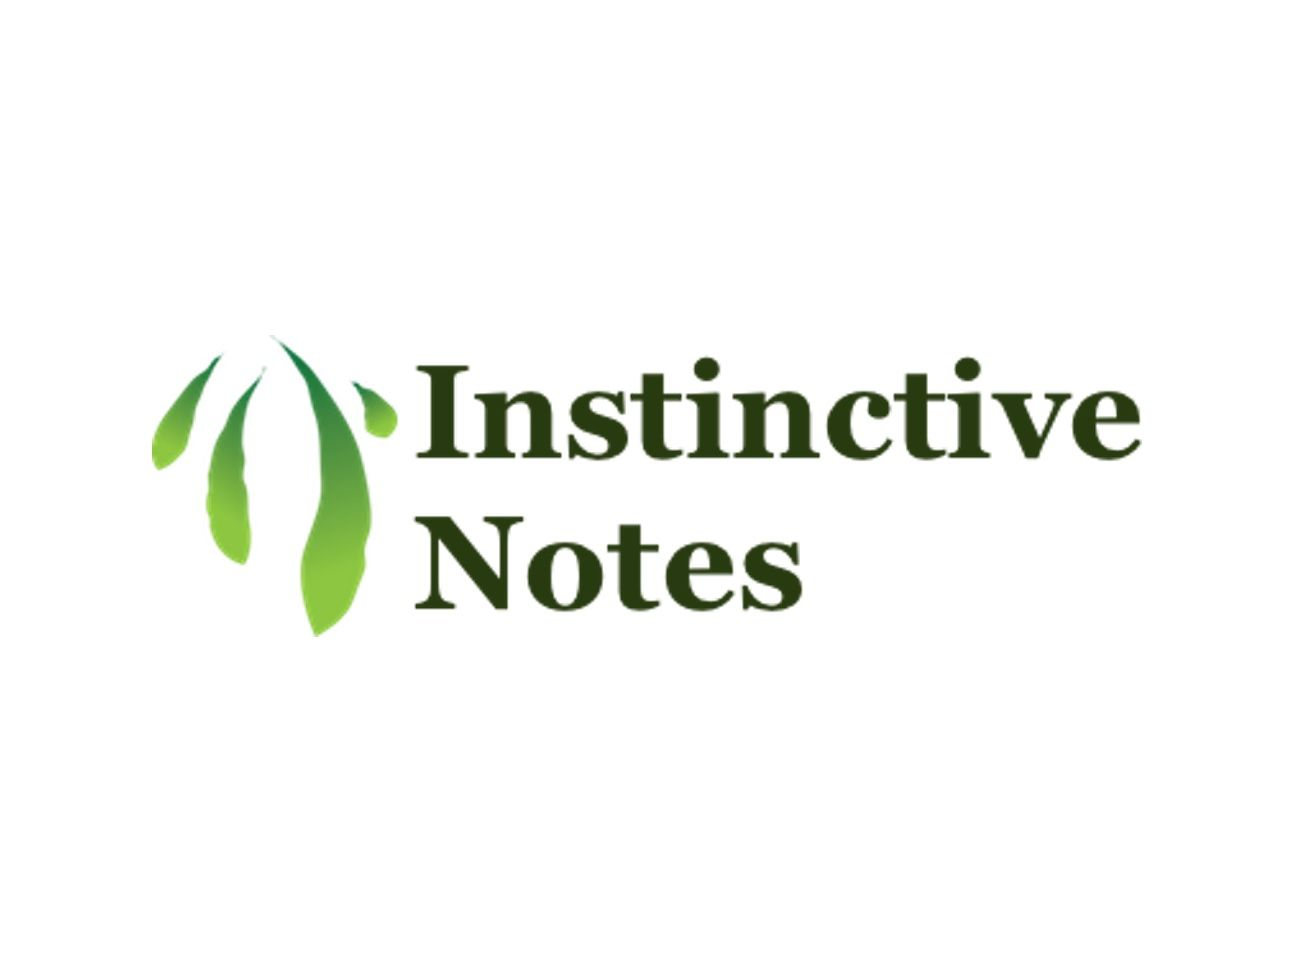 Instinctive notes on mobile